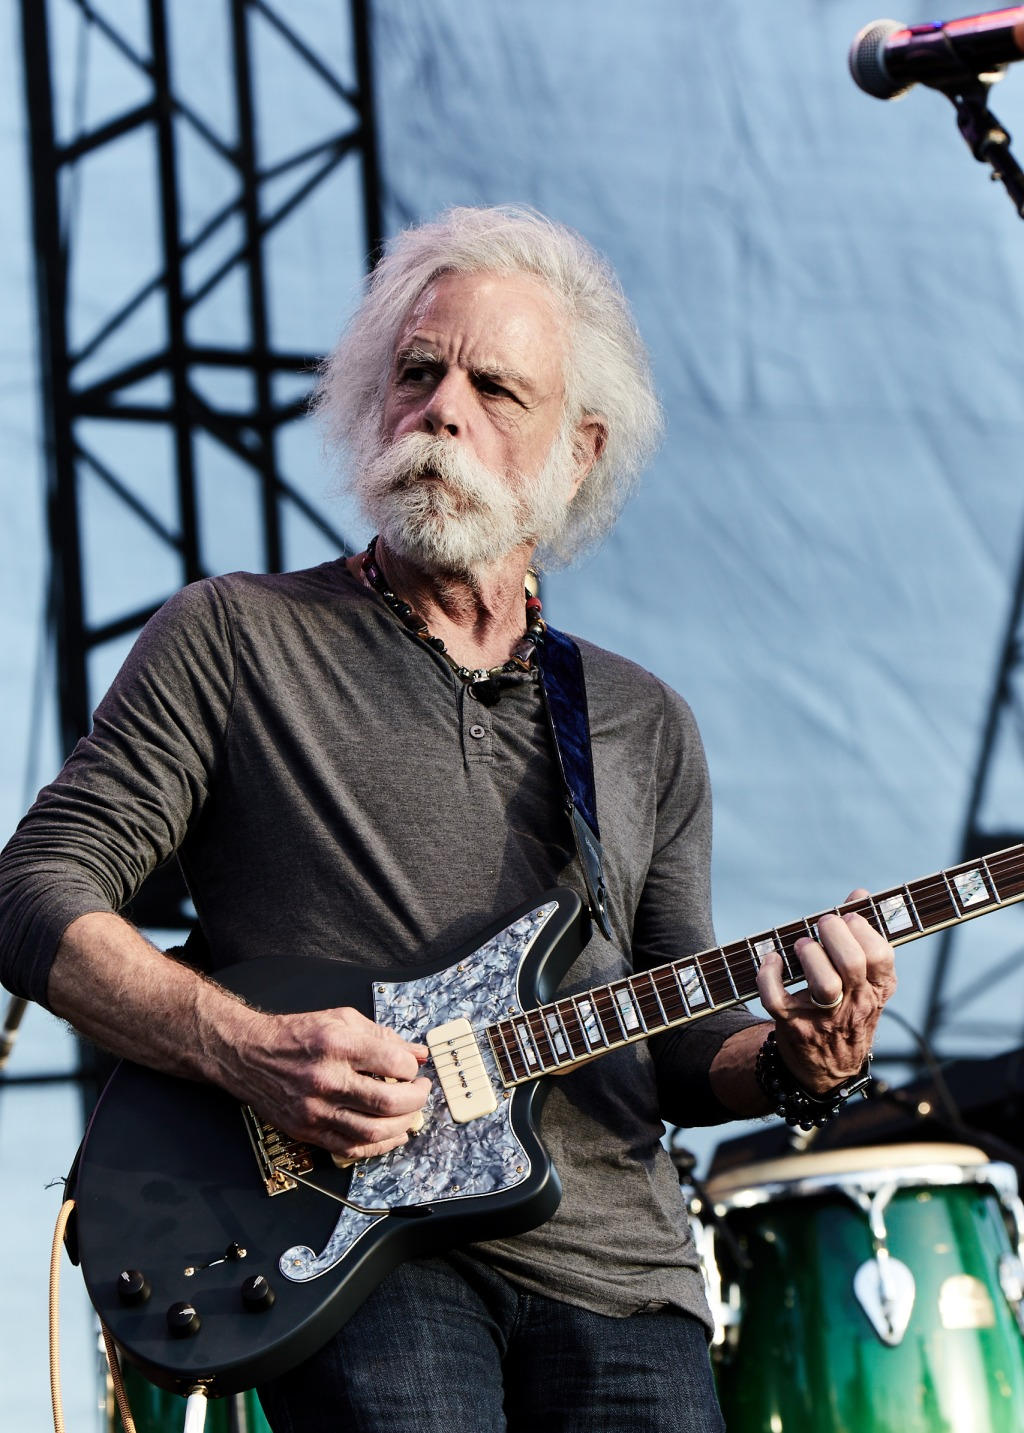 Bob Weir performs joins Slightly Stoopid on stage at BeachLife Music Festival in Redondo Beach, California on May 3-5th, 2019.